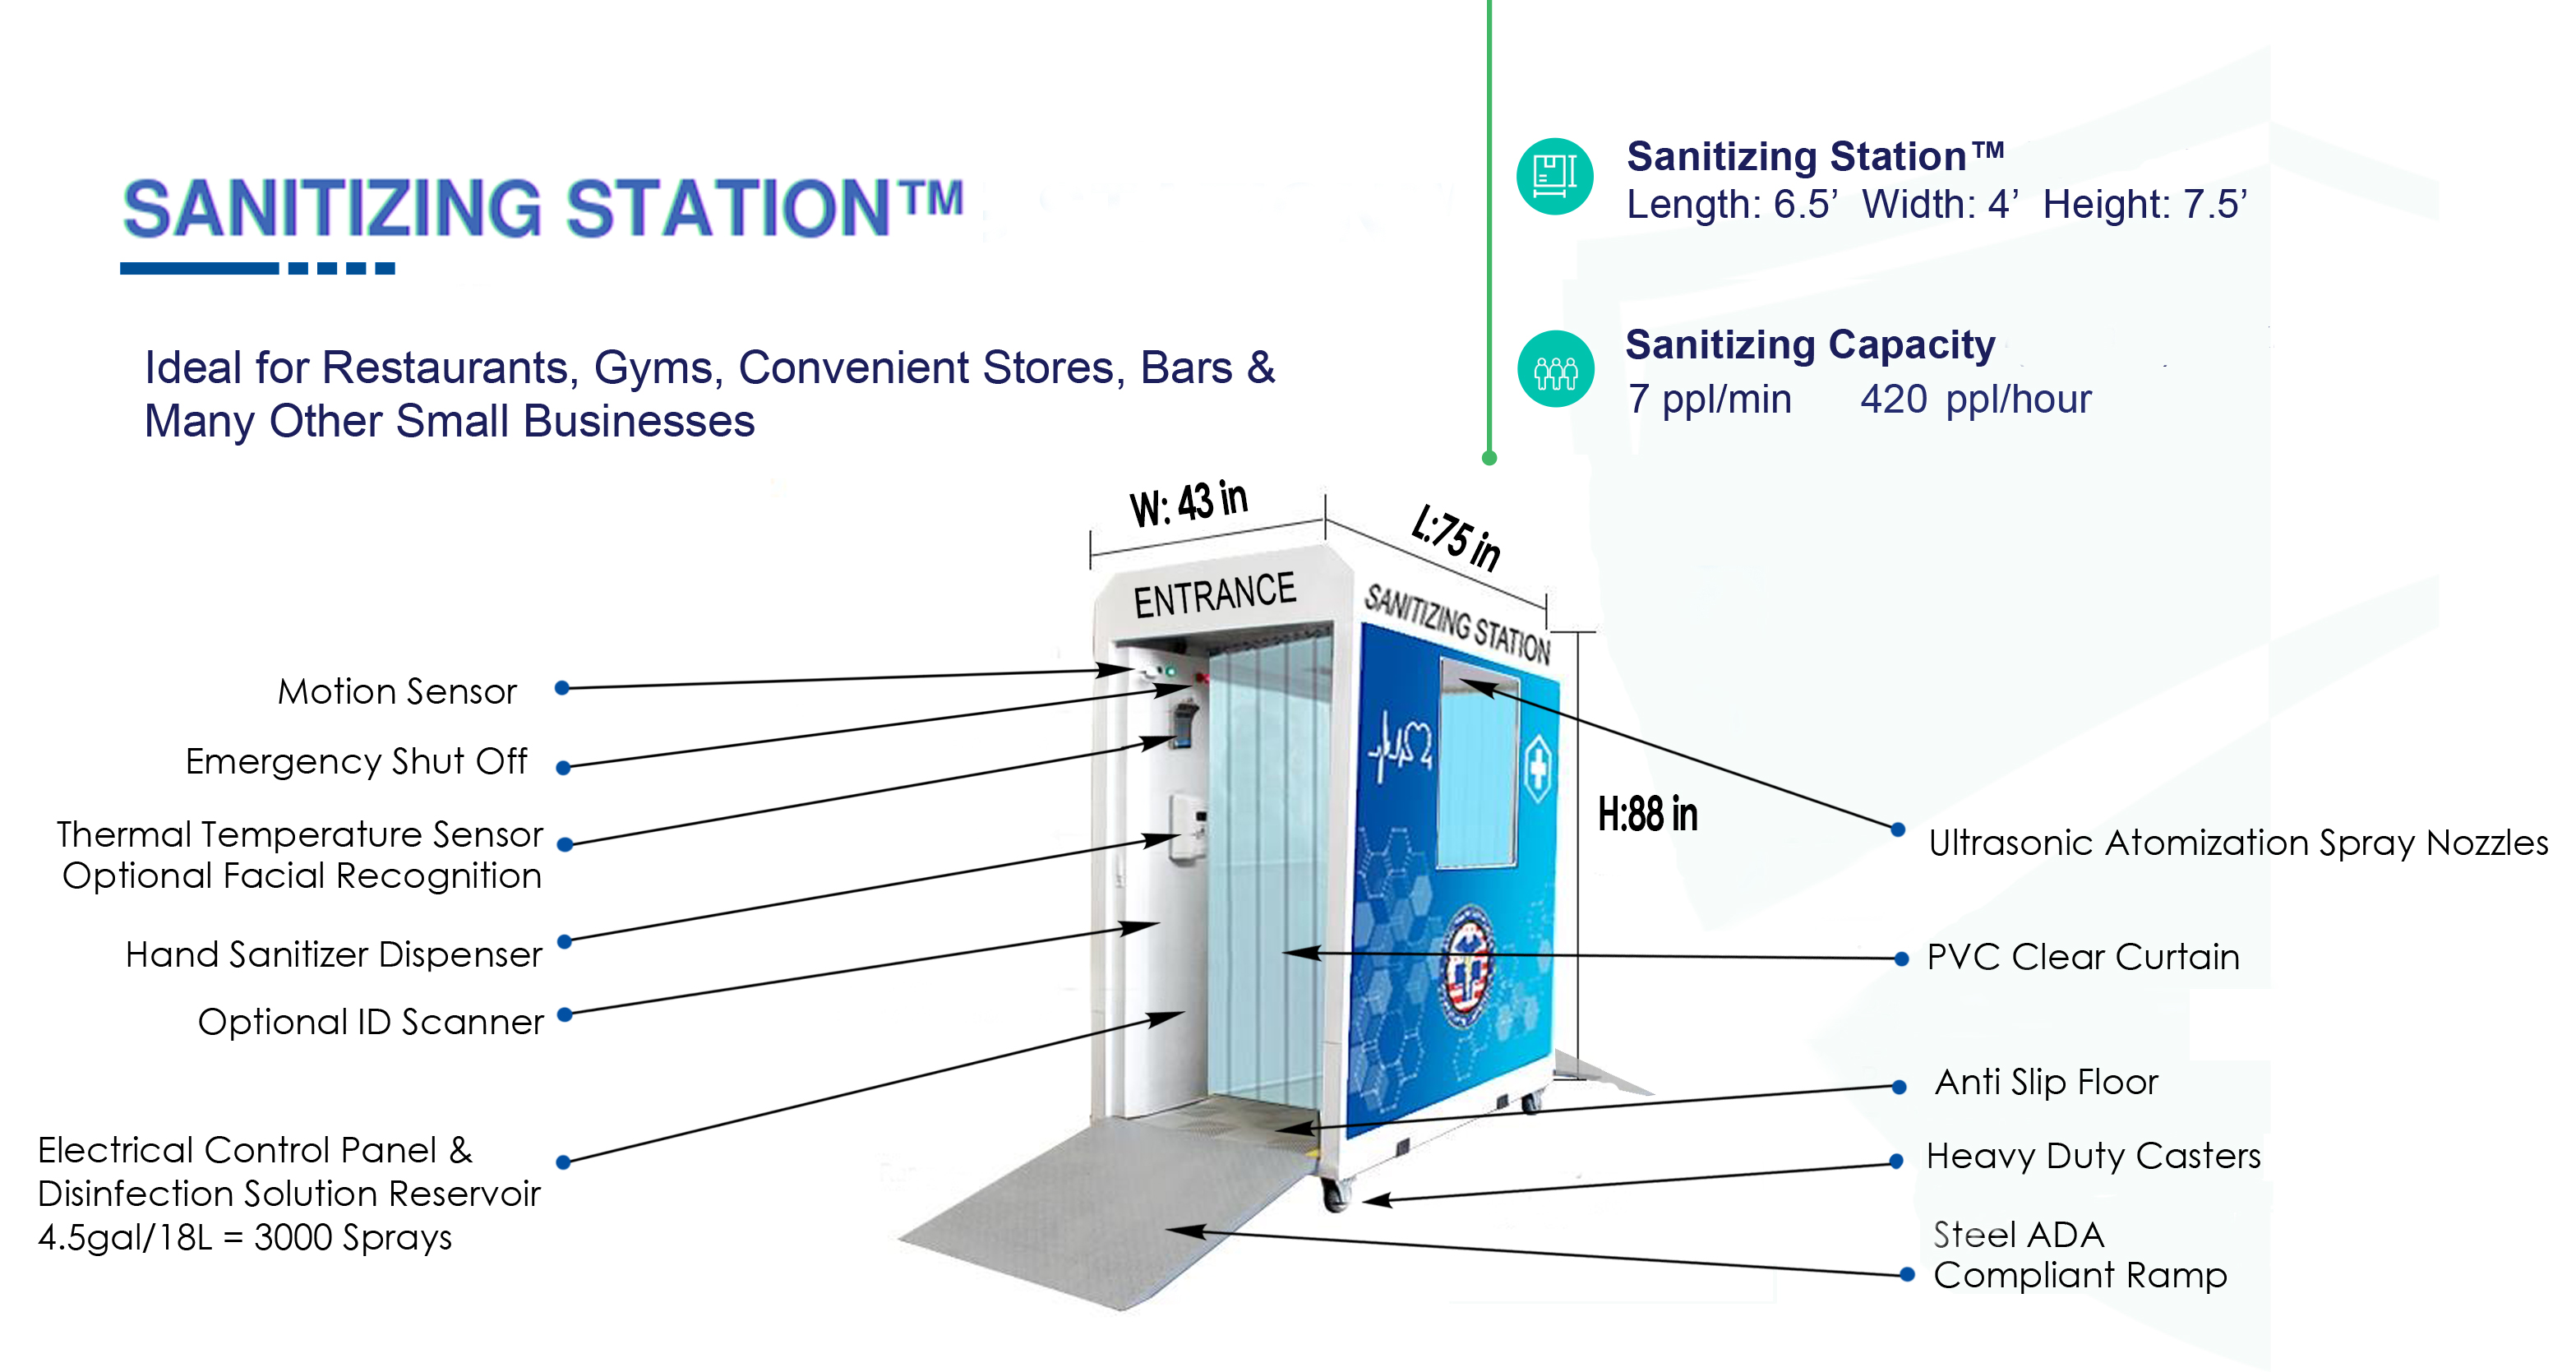 Portable Sanitizing Station™ from the National Safety Health & Compliance Commission Helps Combat the Spread of COVID-19